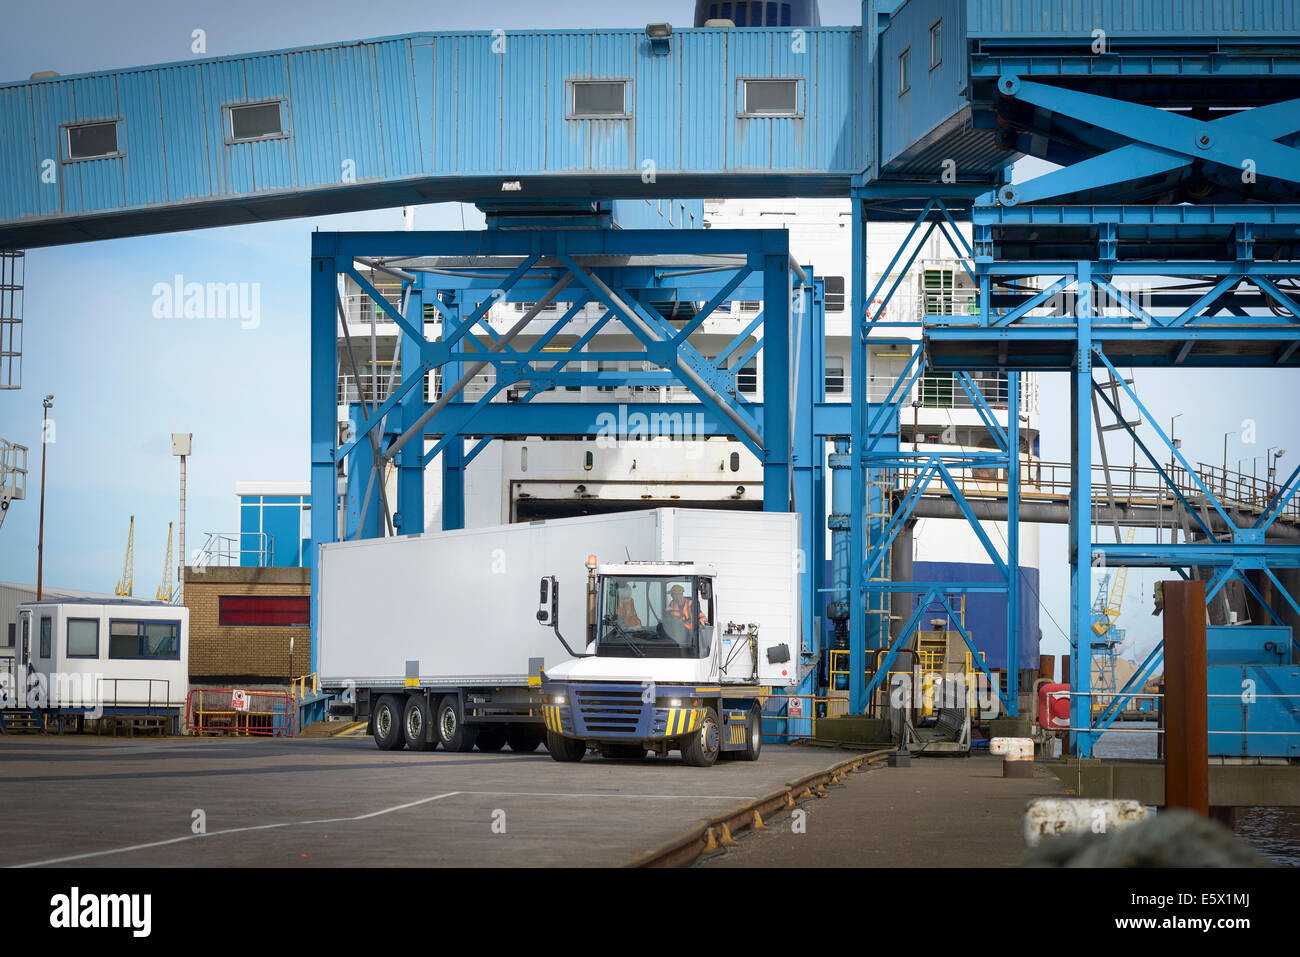 Truck loading containers onto ship in port - Stock Image